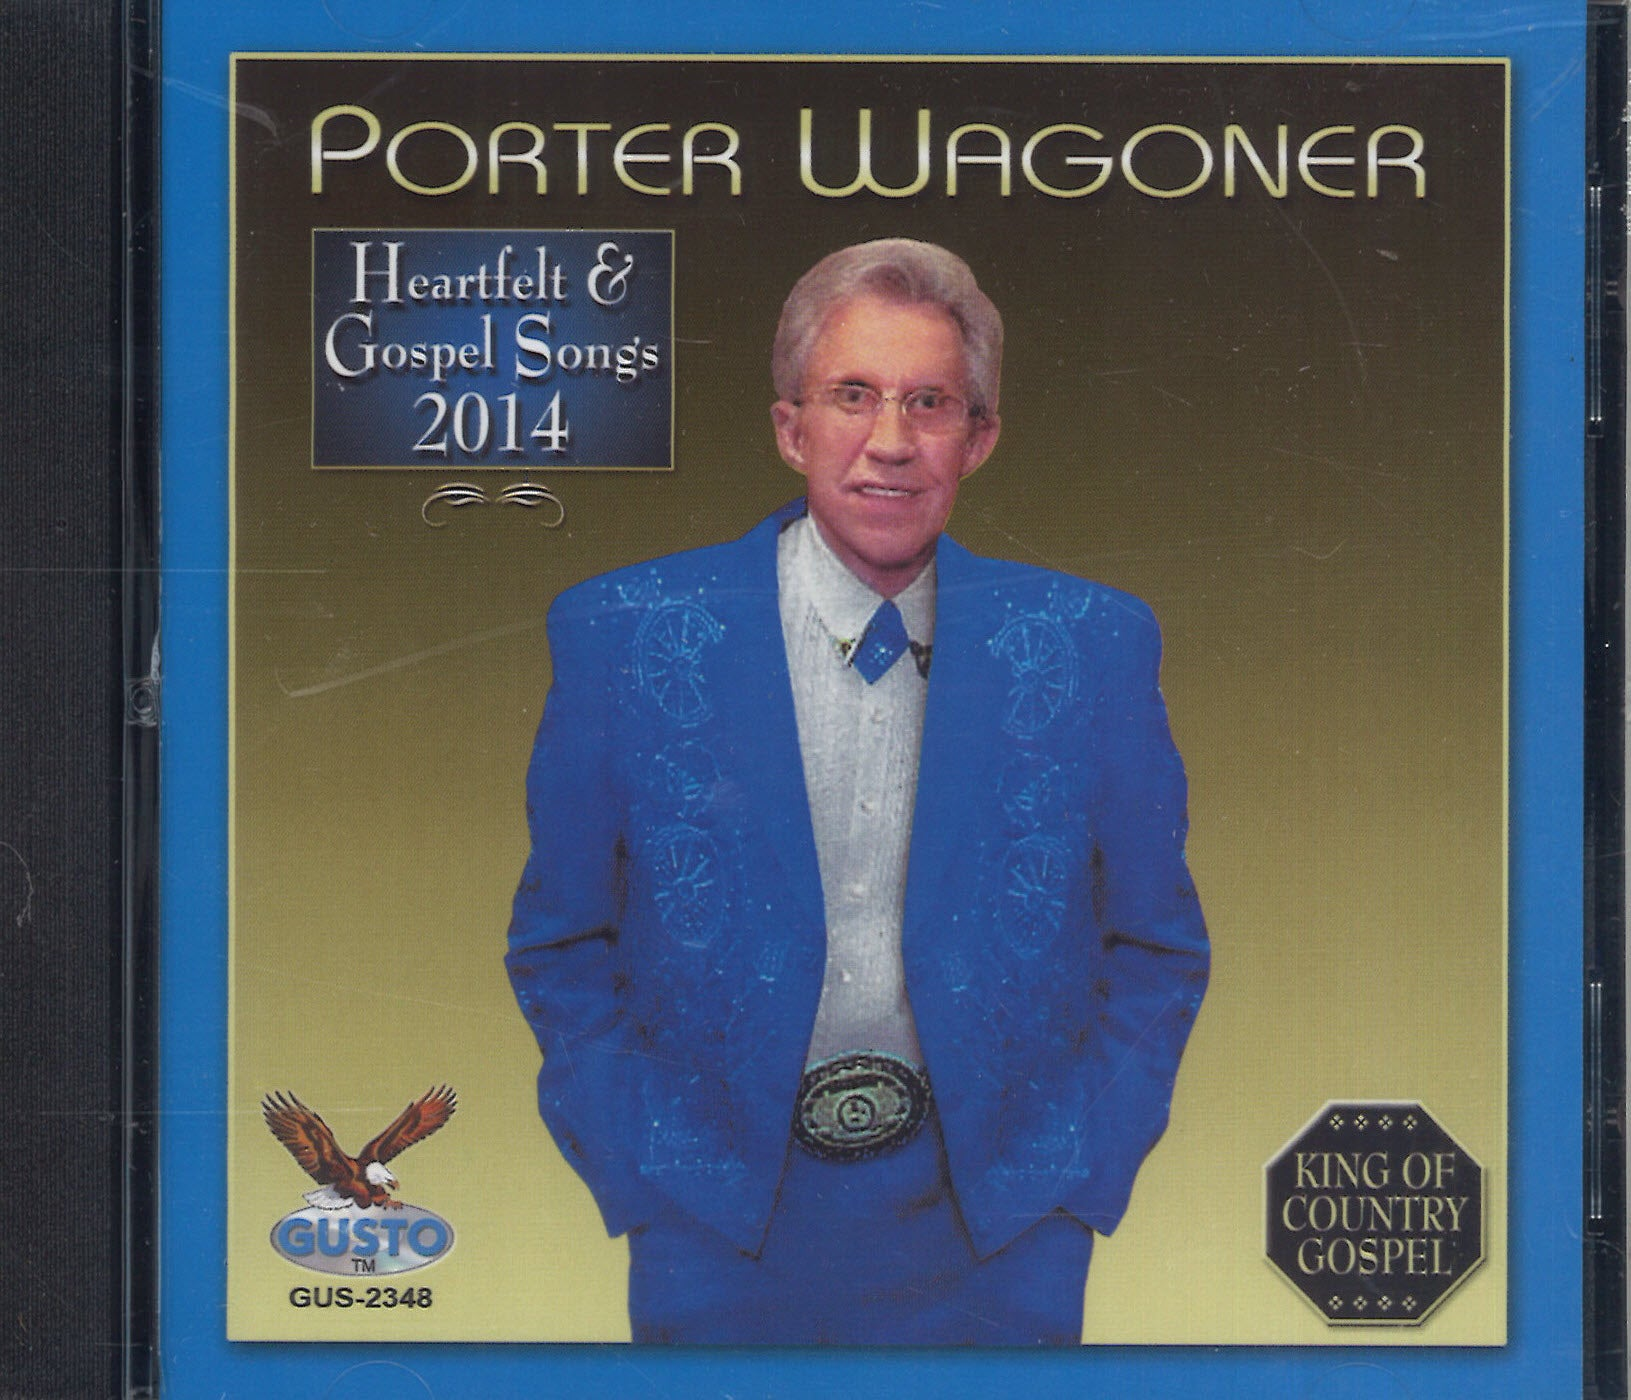 Porter Wagoner Heartfelt & Gospel Songs 2014